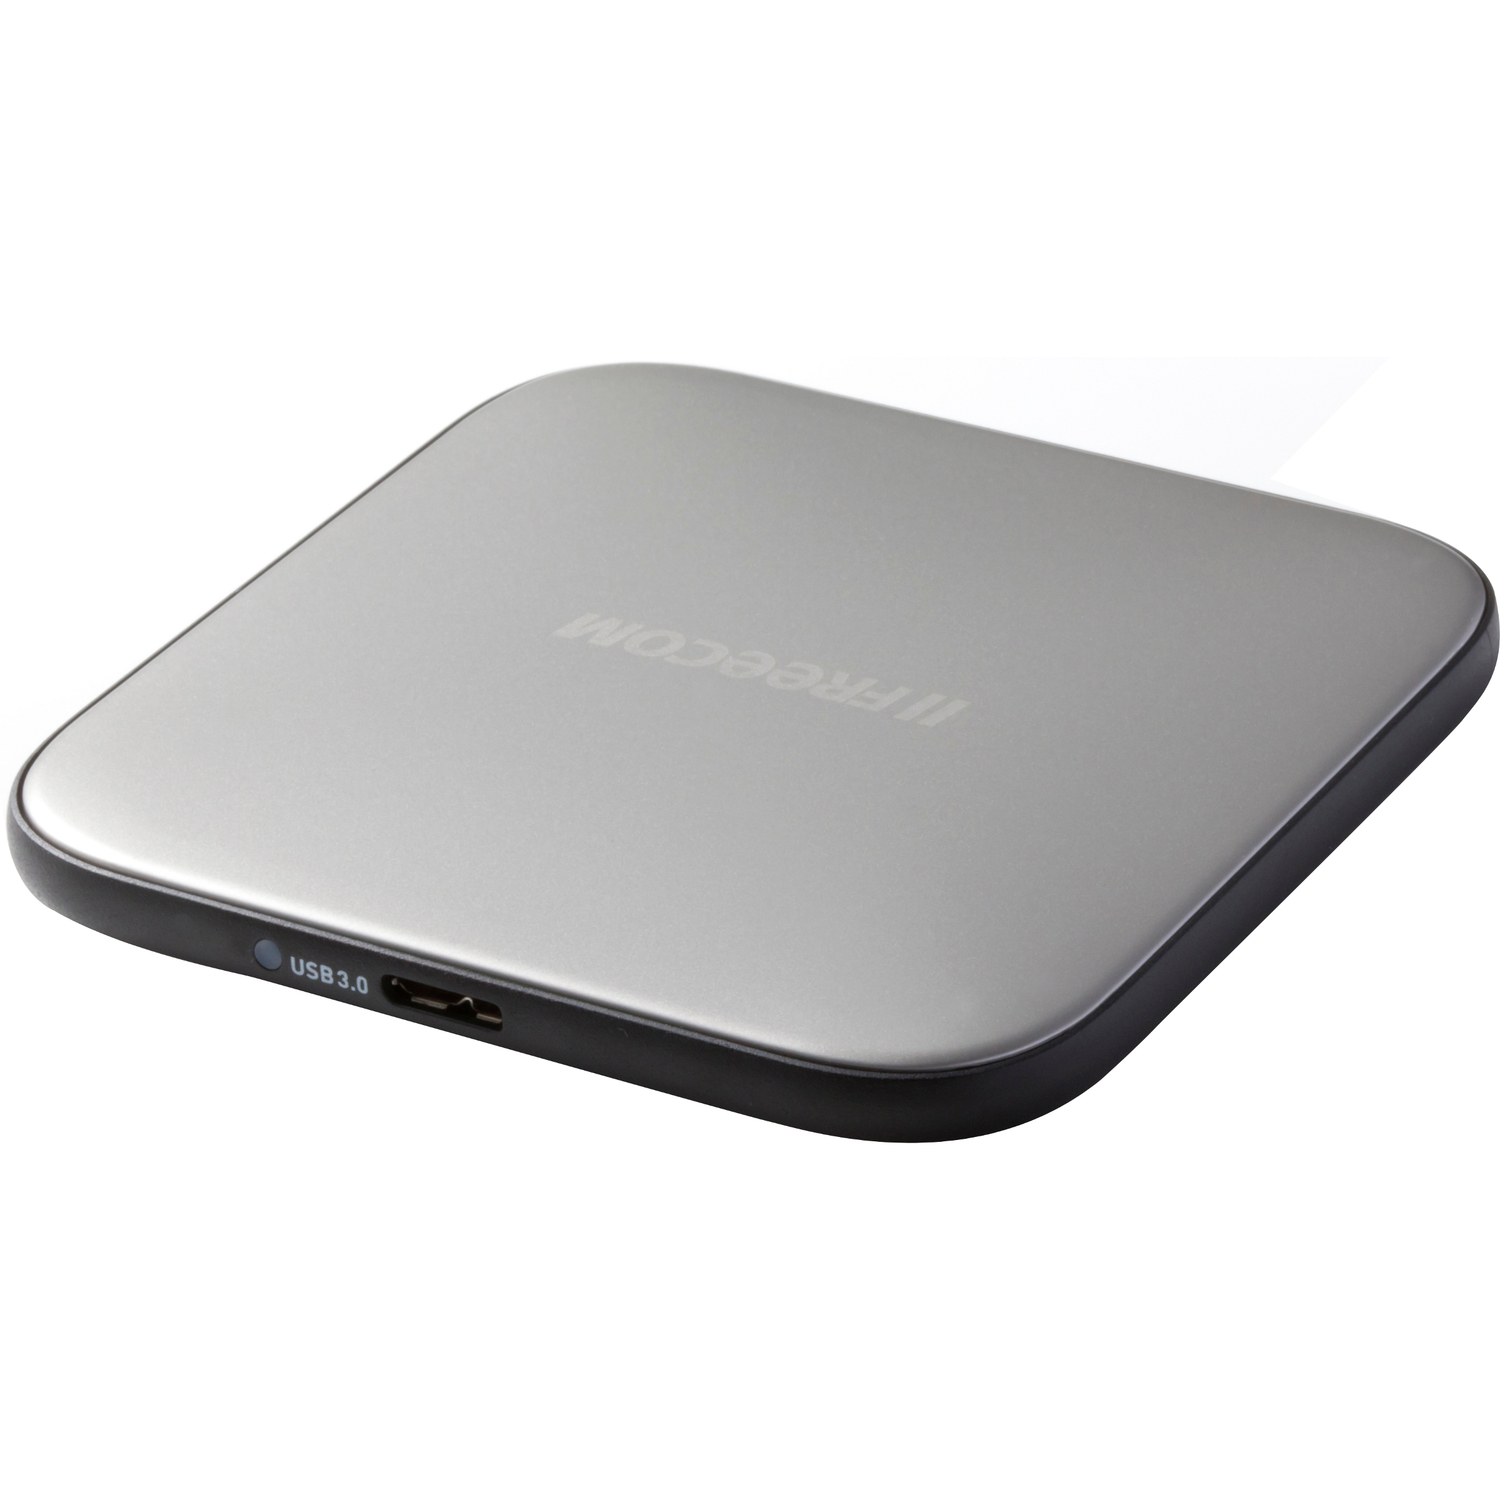 Freecom Mobile Drive Sq 1 TB 2.5inch External Hard Drive